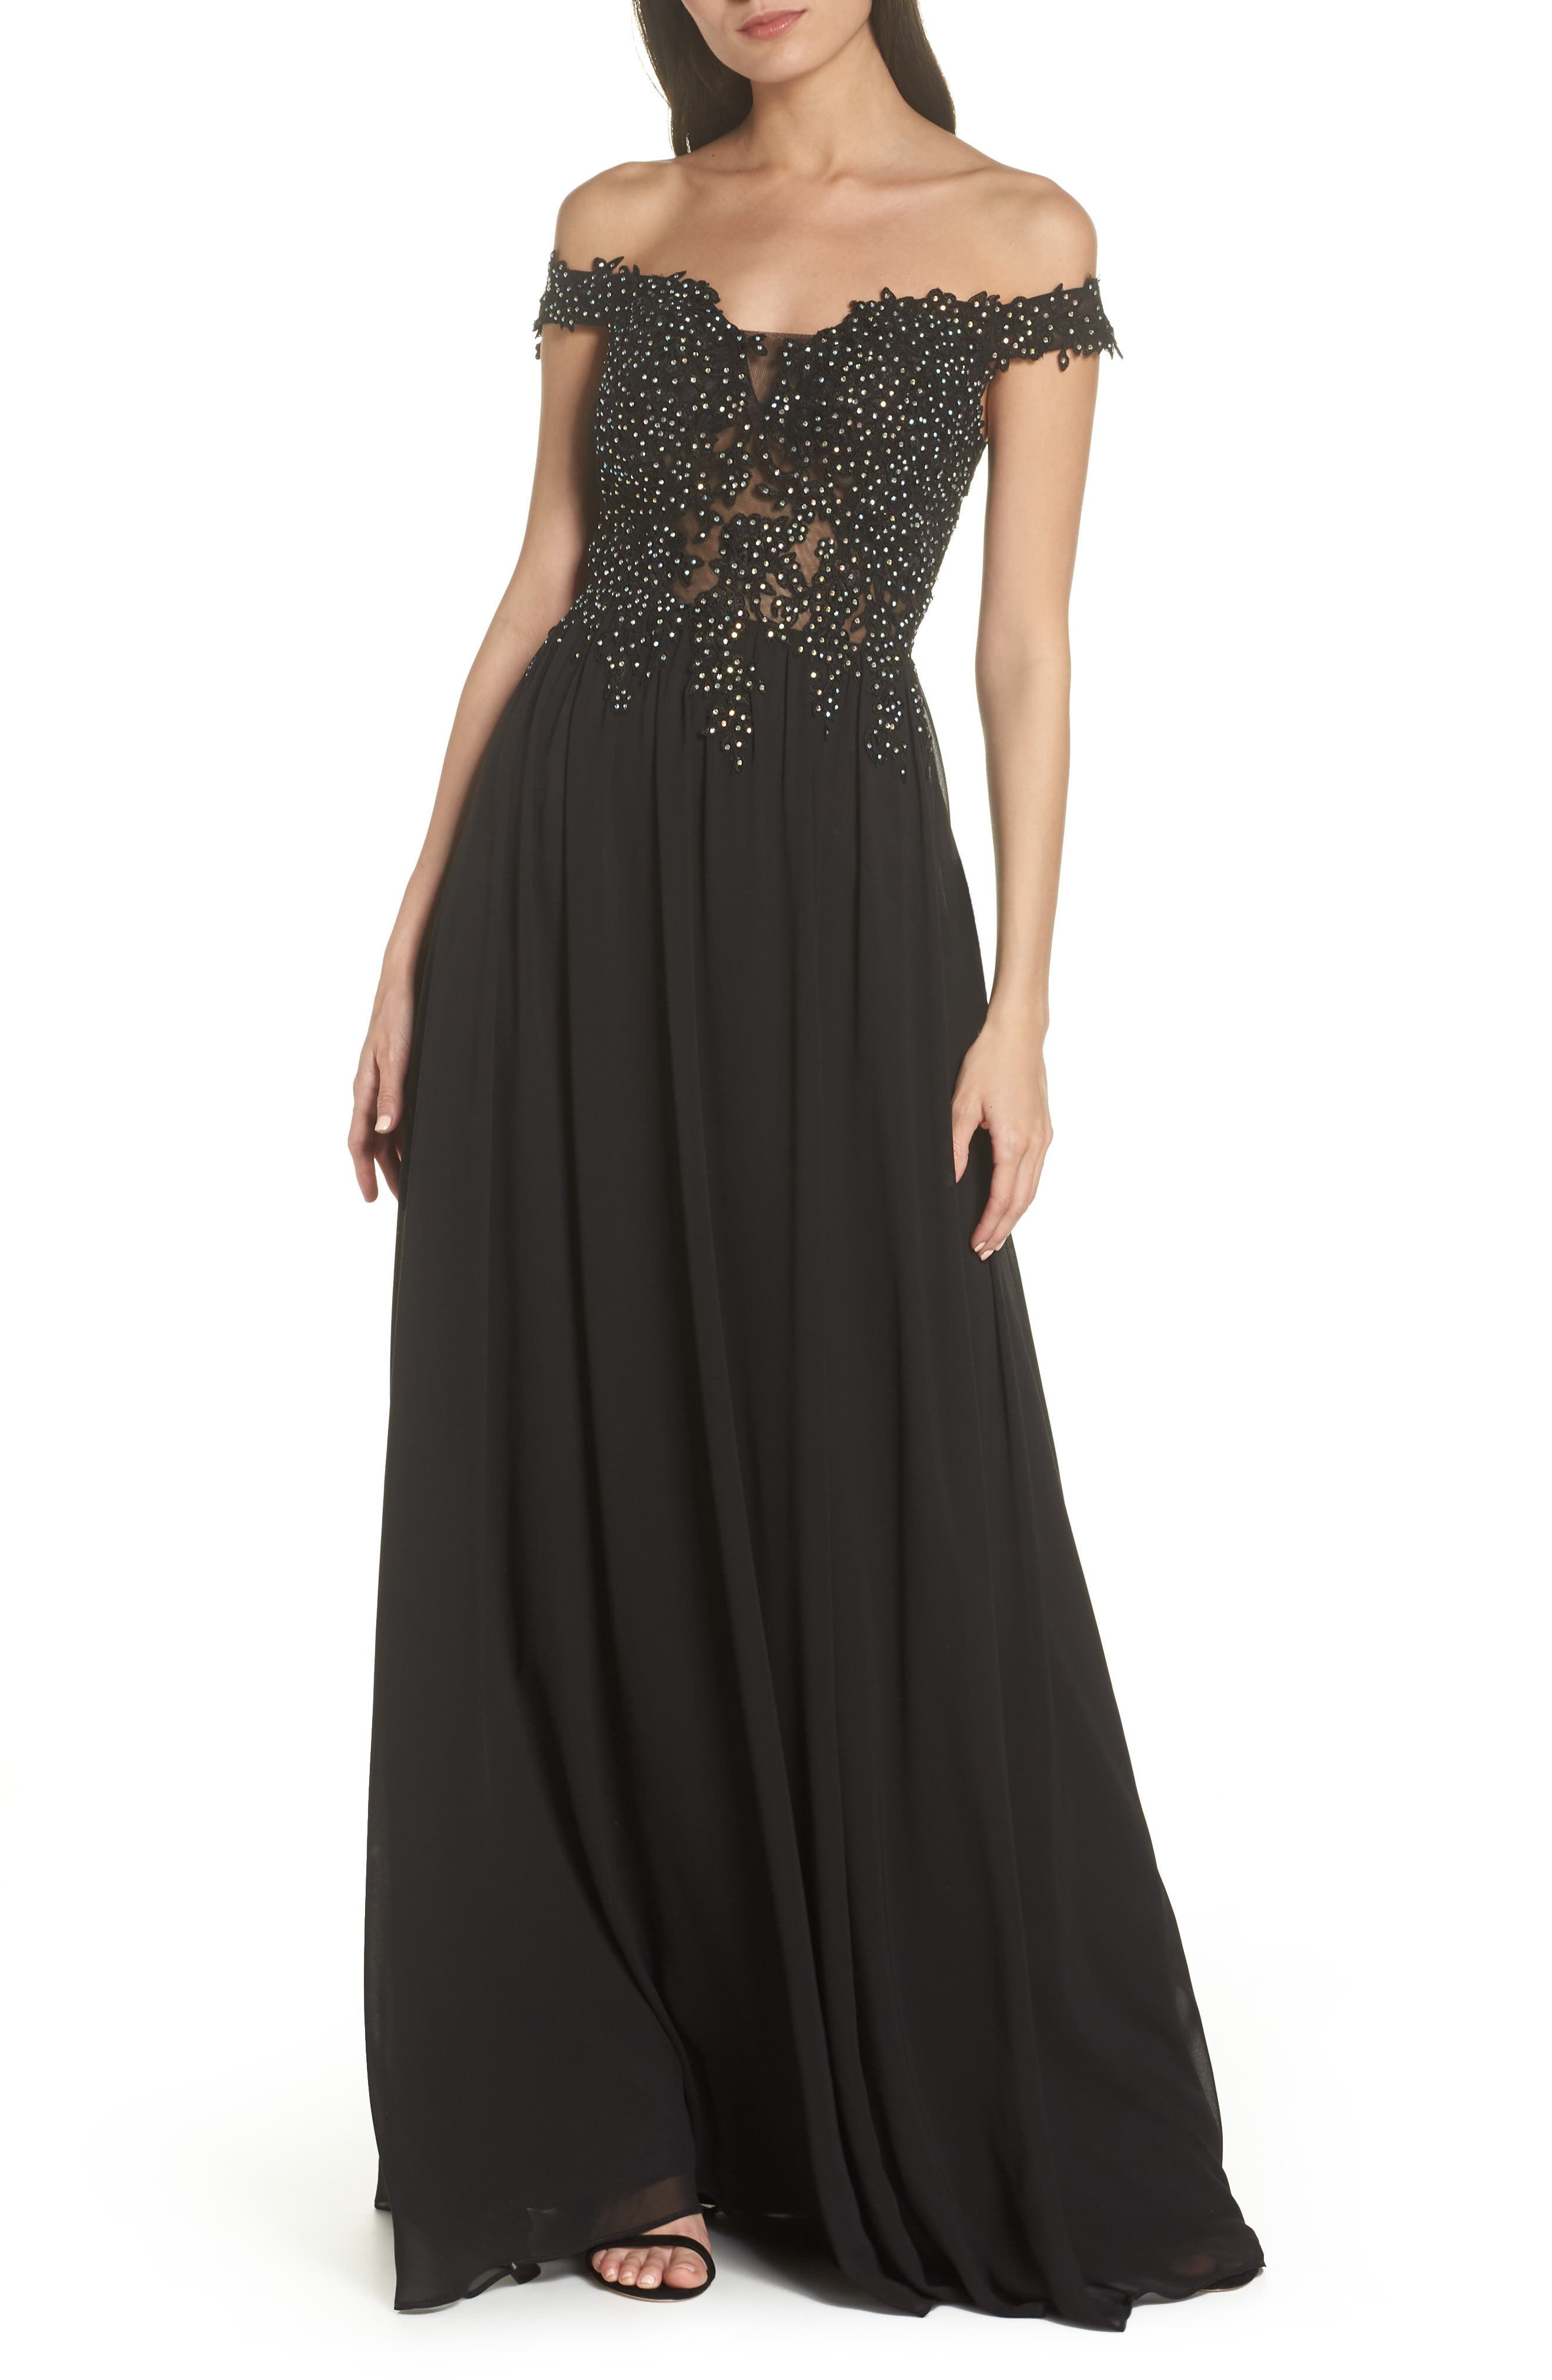 Blondie Nites Off The Shoulder Illusion Back Gown, Black